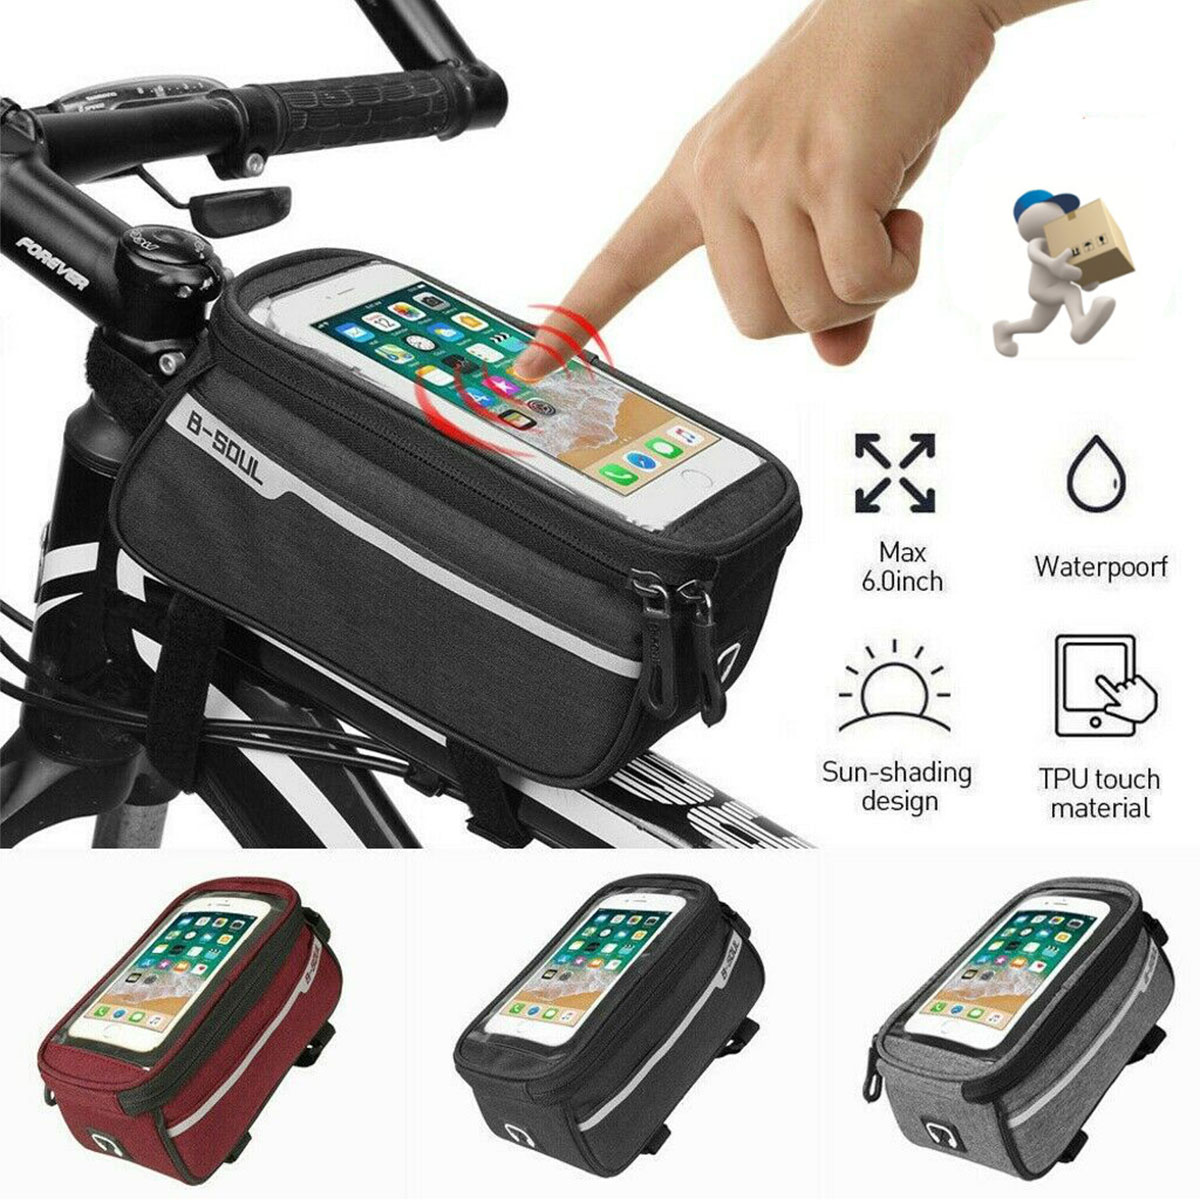 Waterproof MTB Mountain Bike Frame Front Bag for Bicycle Mobile Phone Holder